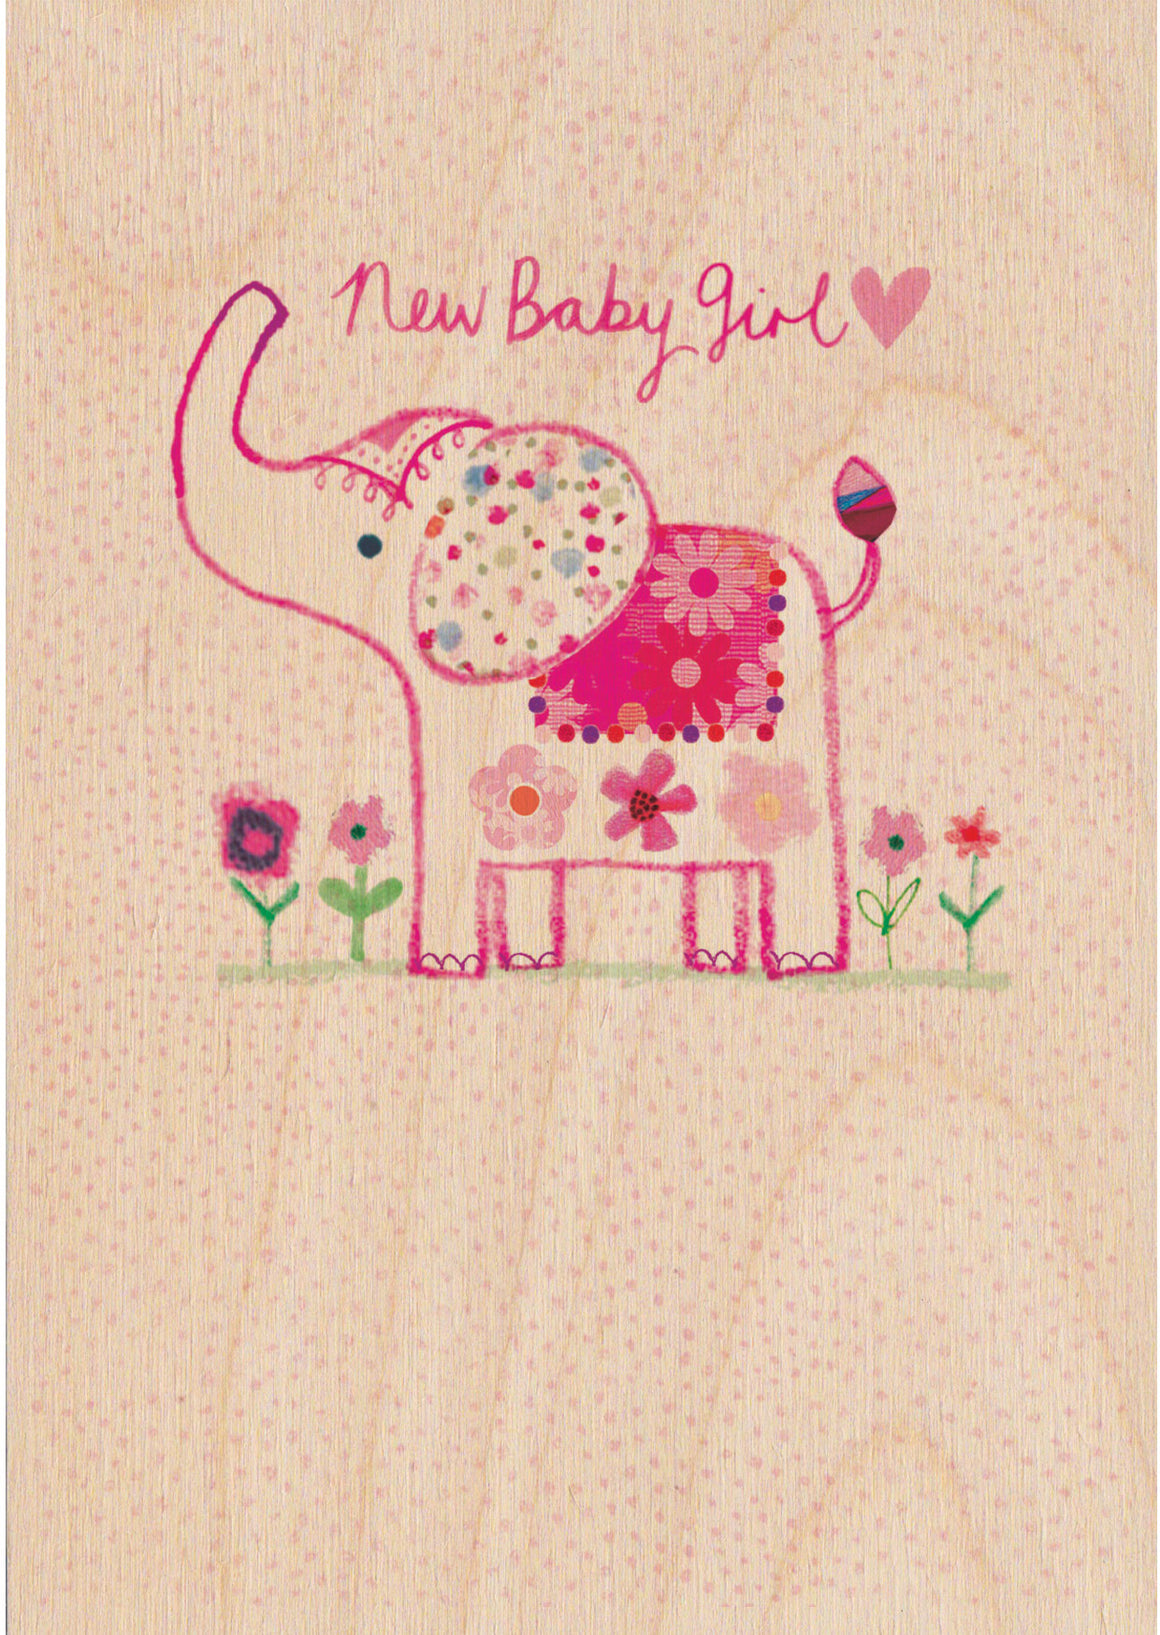 New Baby Girl Wooden Postcard Greeting Card - The Love Trees